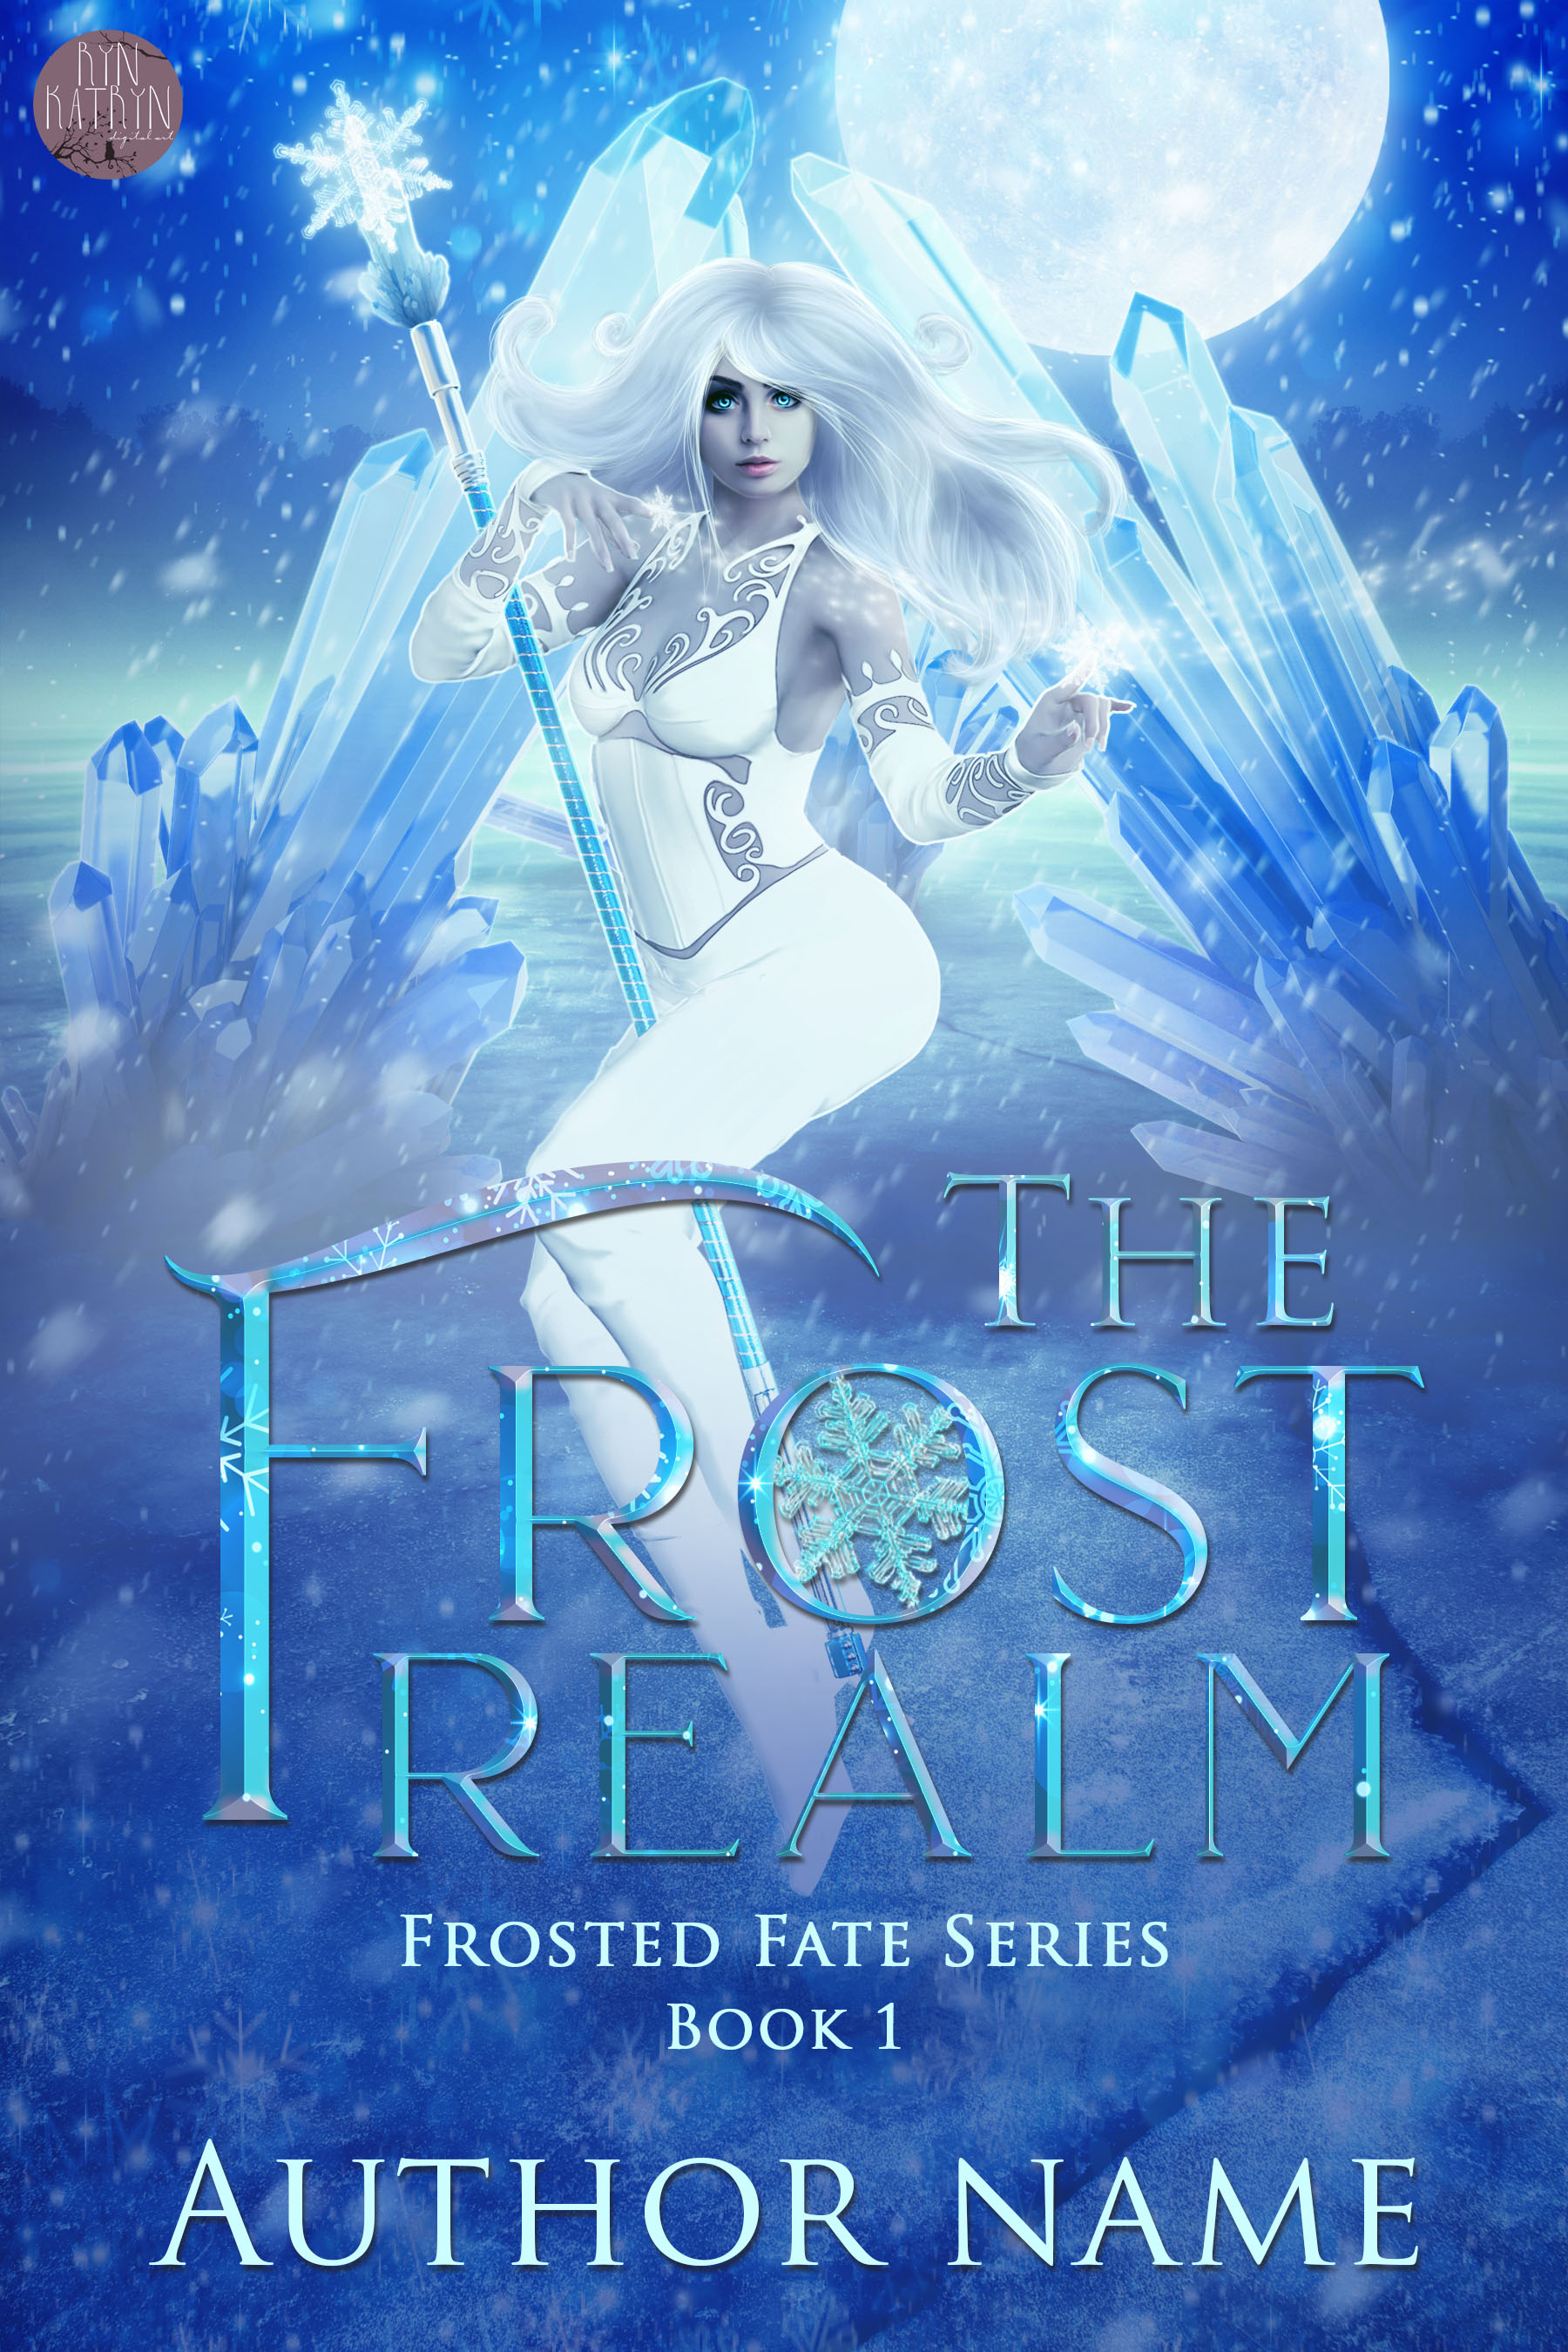 The Frost Realm